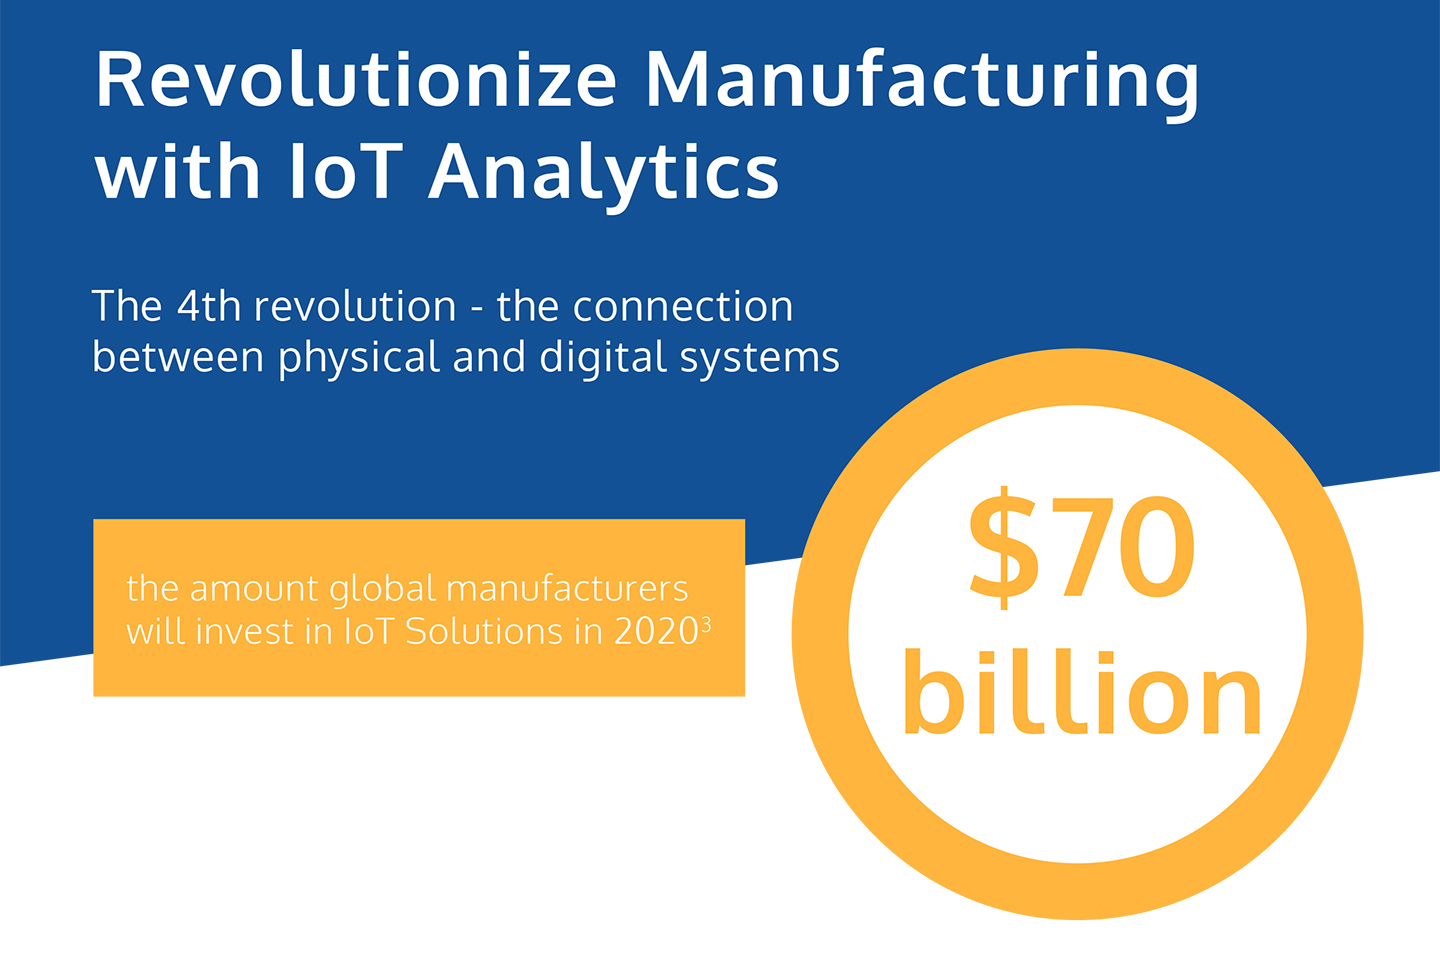 Revolutionize Manufacturing with IoT Analytics